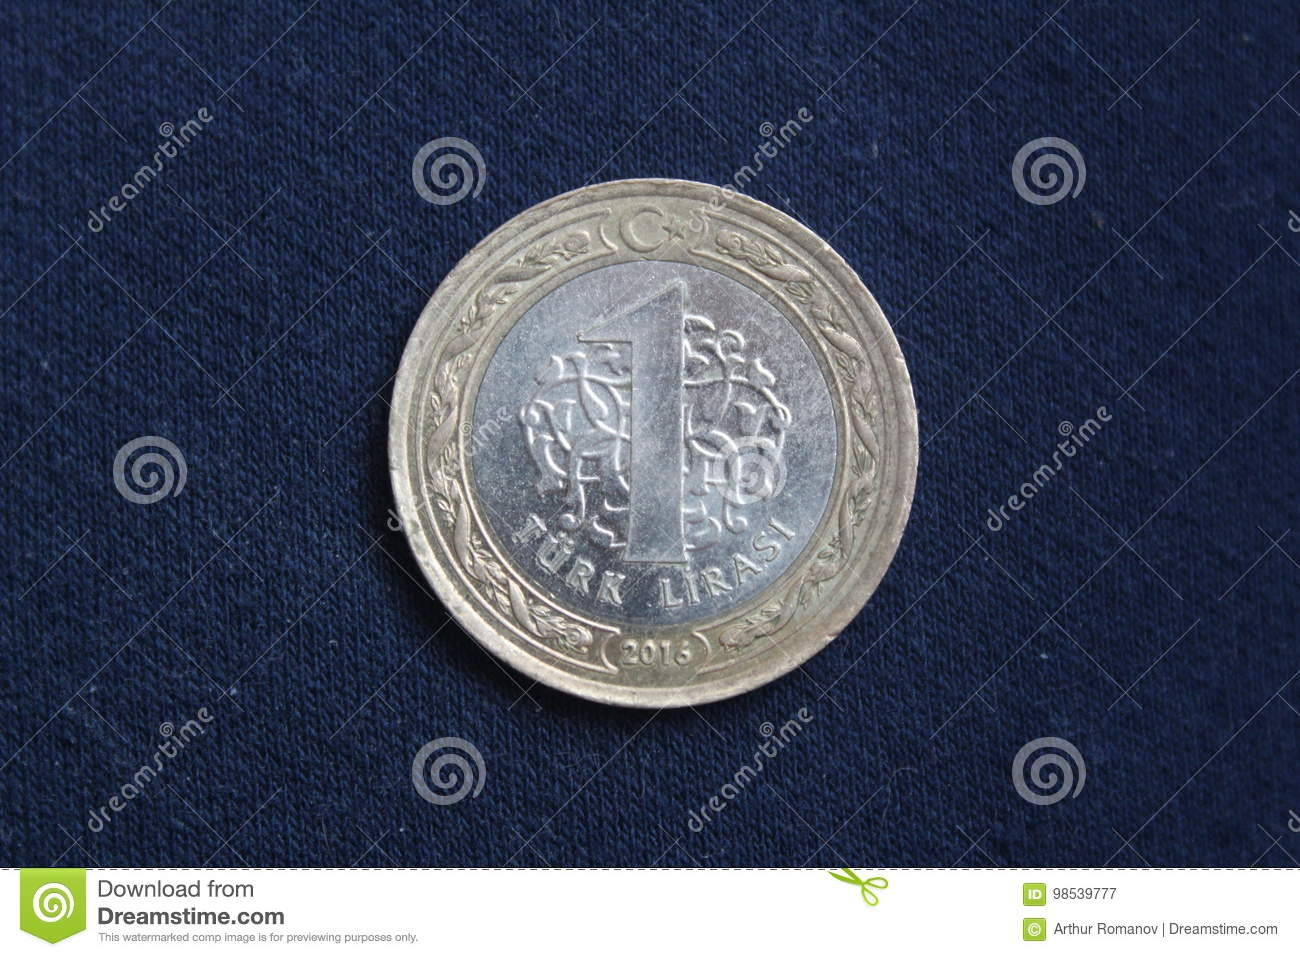 A Coin Worth 1 Turkish Lira Is On A Dark Background Stock Image